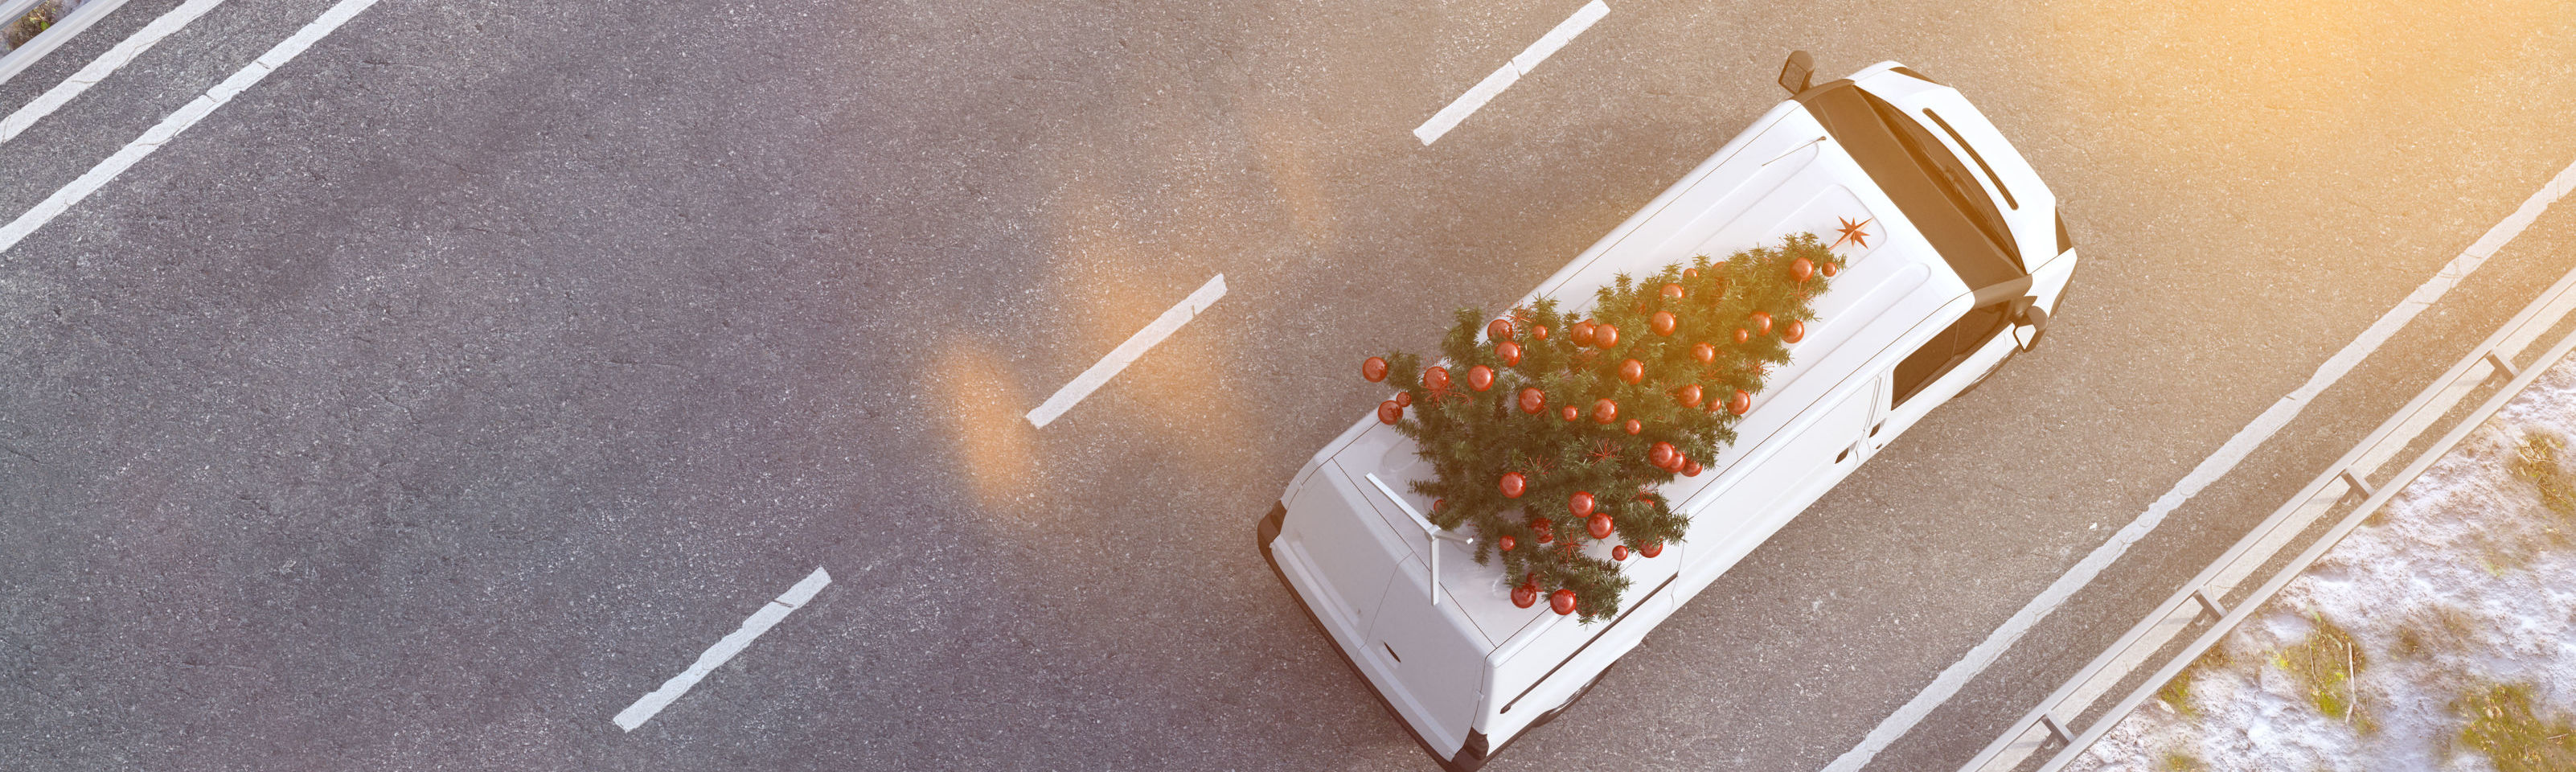 11% of us forget the presents - the facts about festive journeys